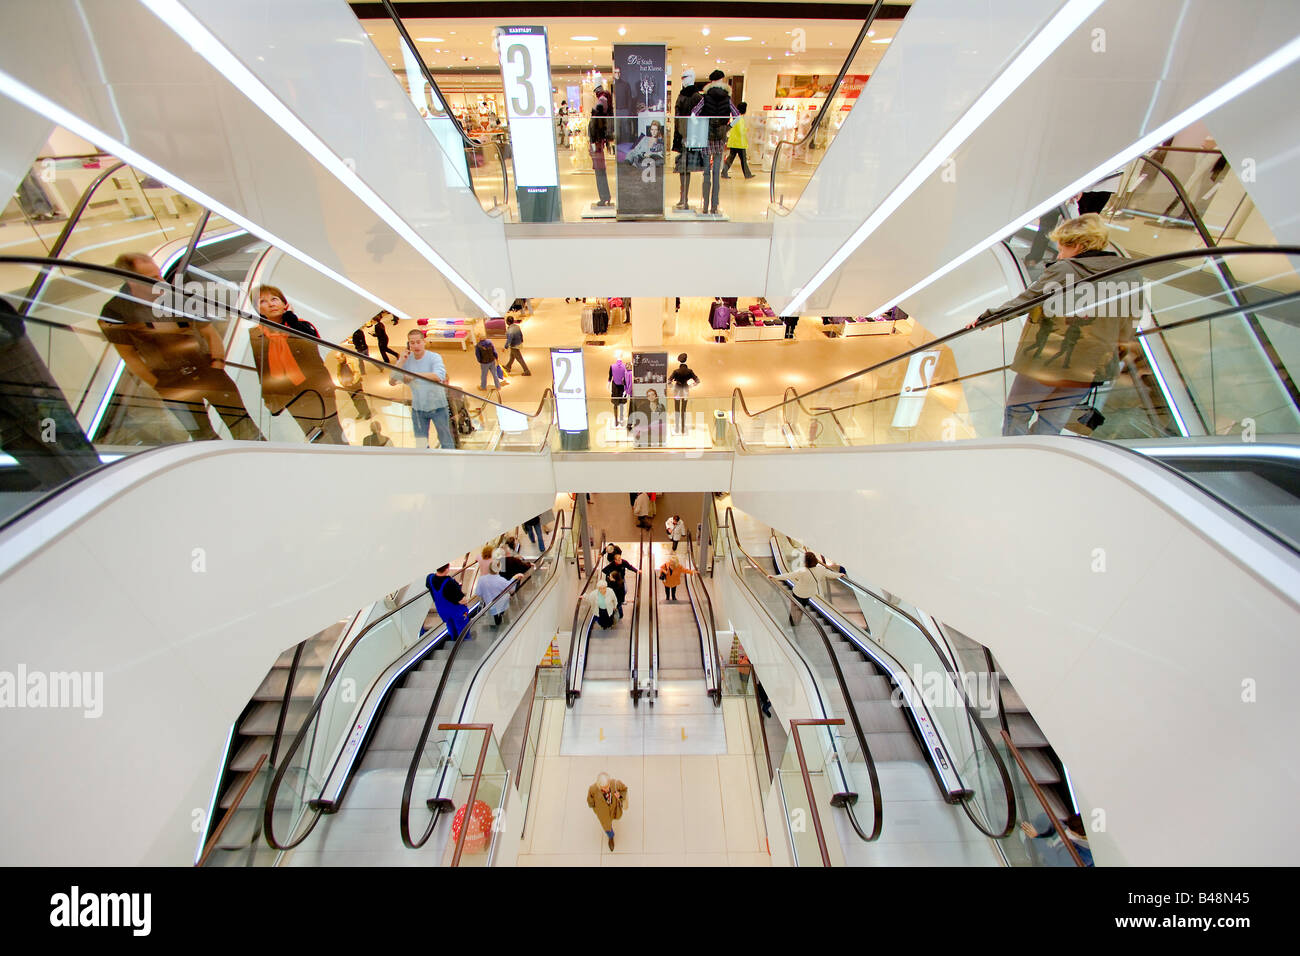 Escalators in a newly renovated department store of the Karstadt Warenhaus GmbH - Stock Image